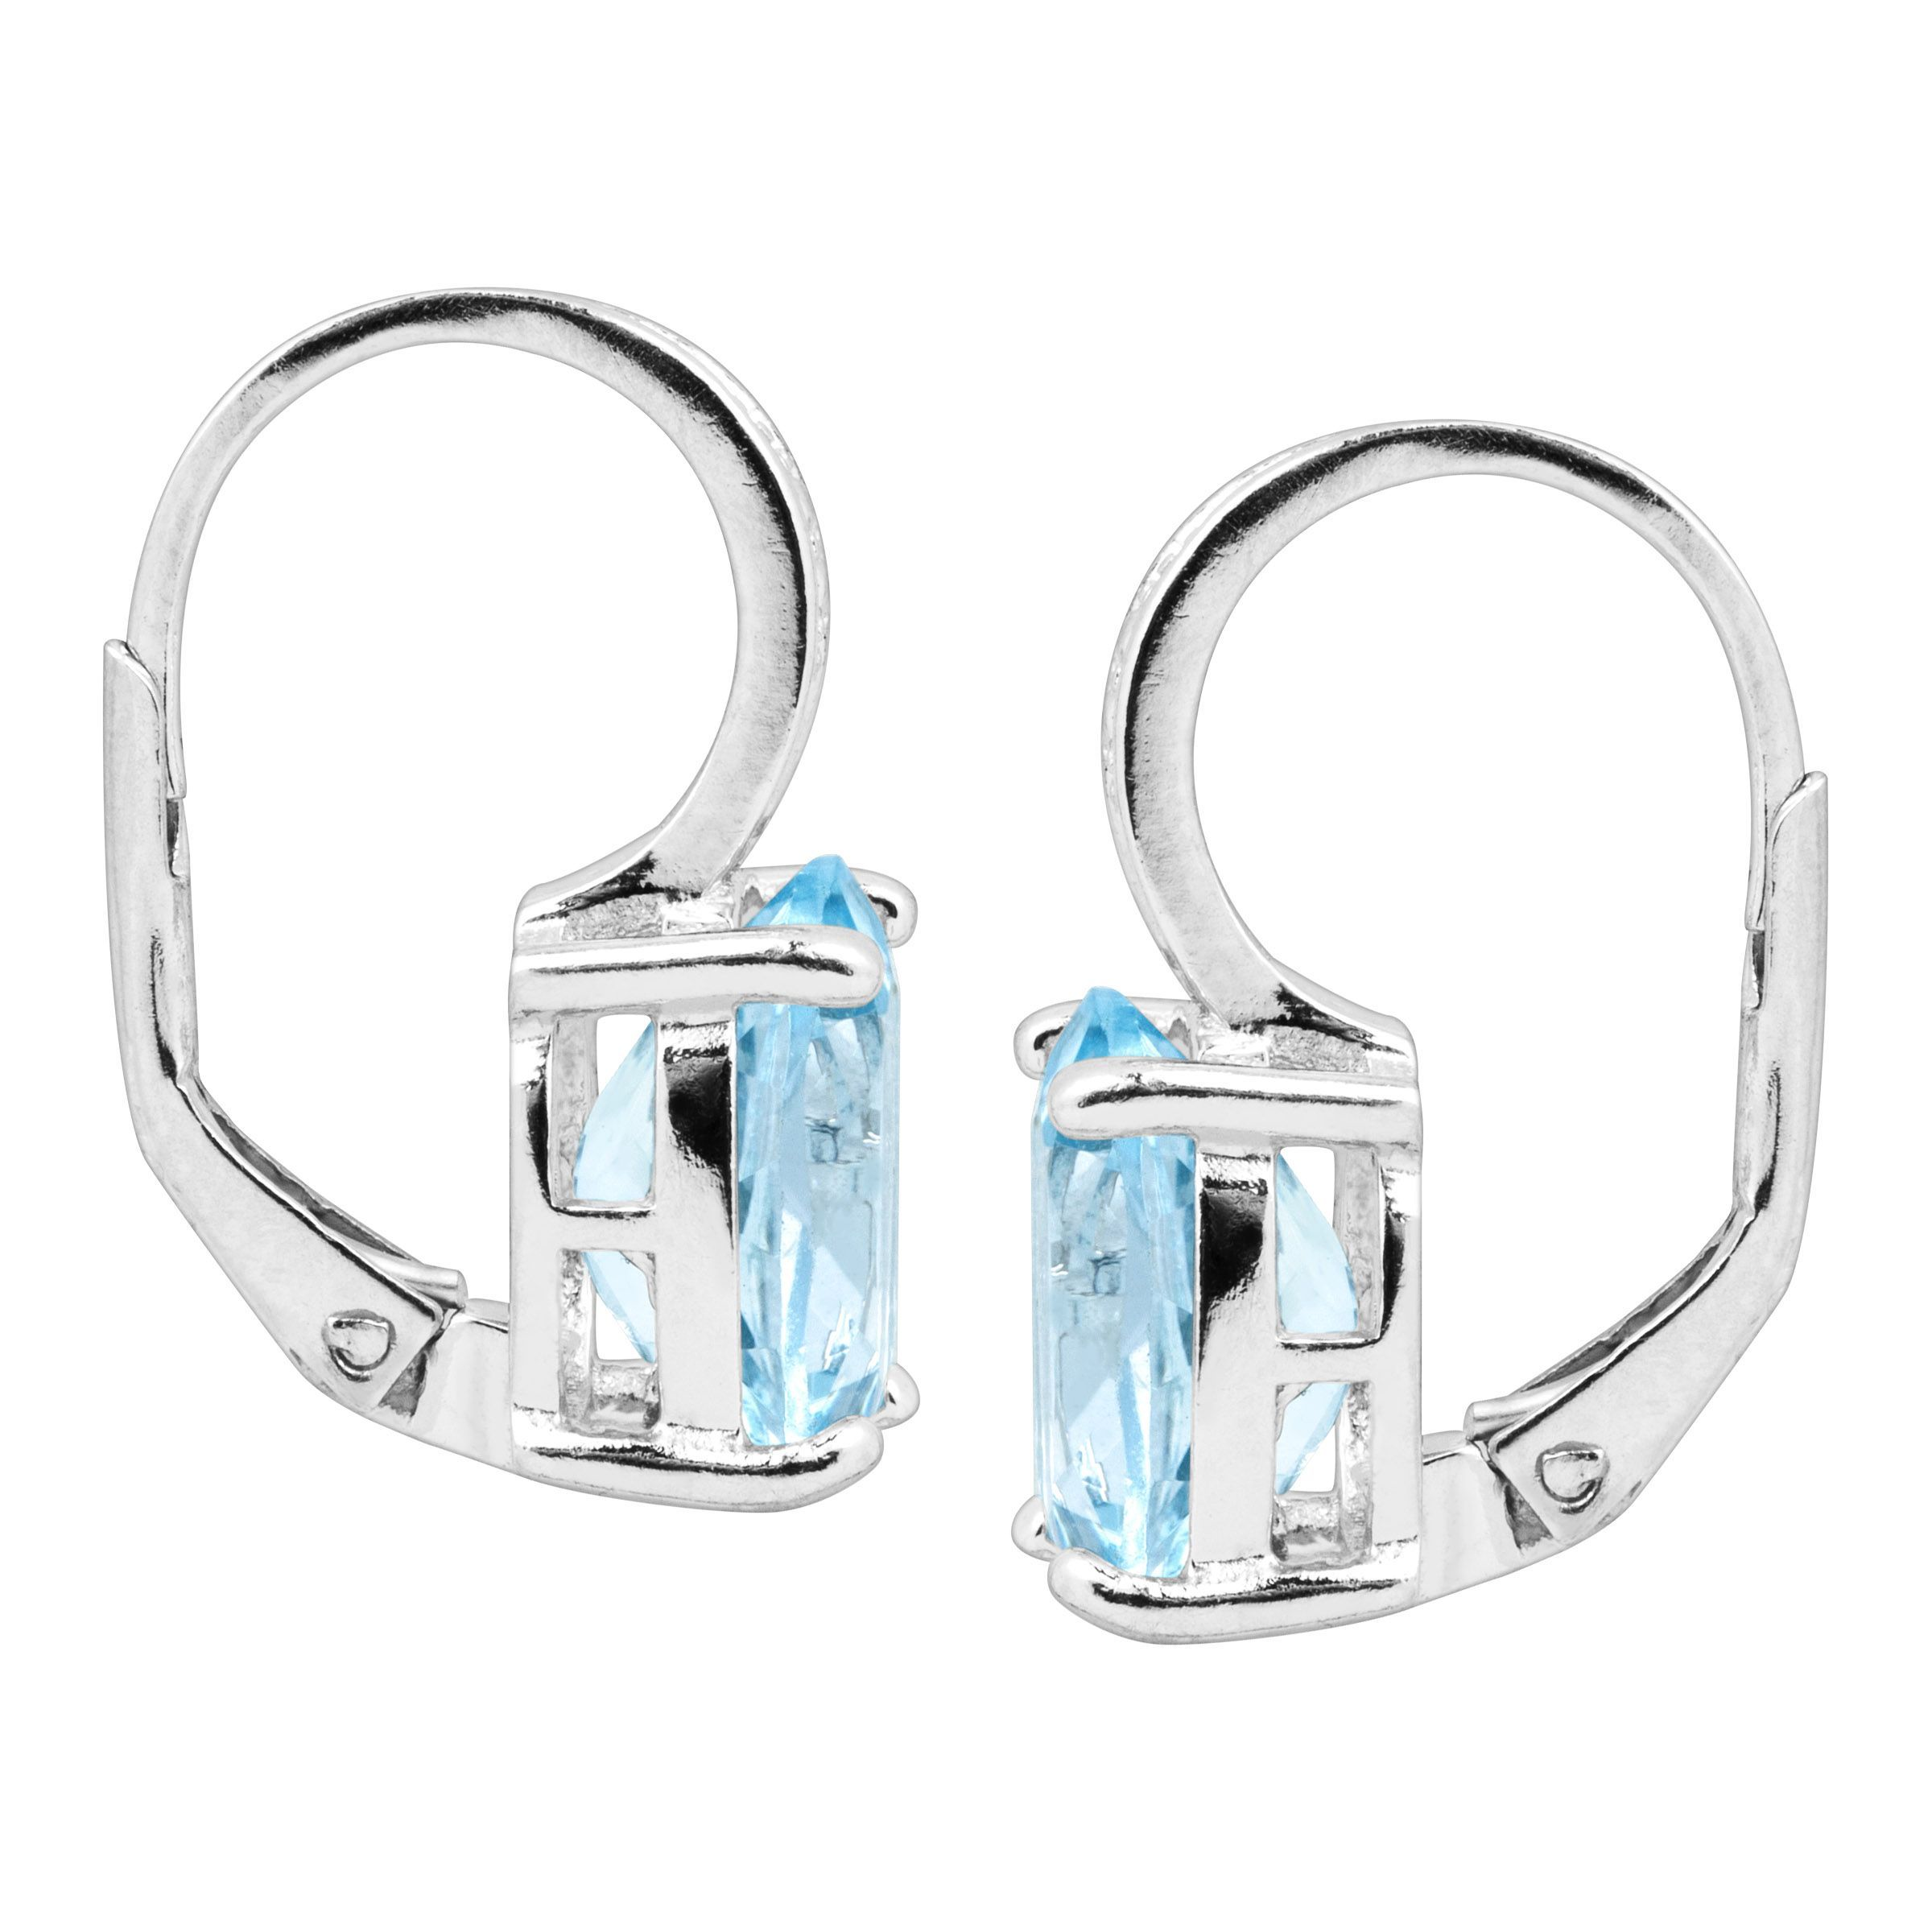 Natural-Gemstone-Drop-Earrings-with-Diamonds-in-Sterling-Silver thumbnail 13